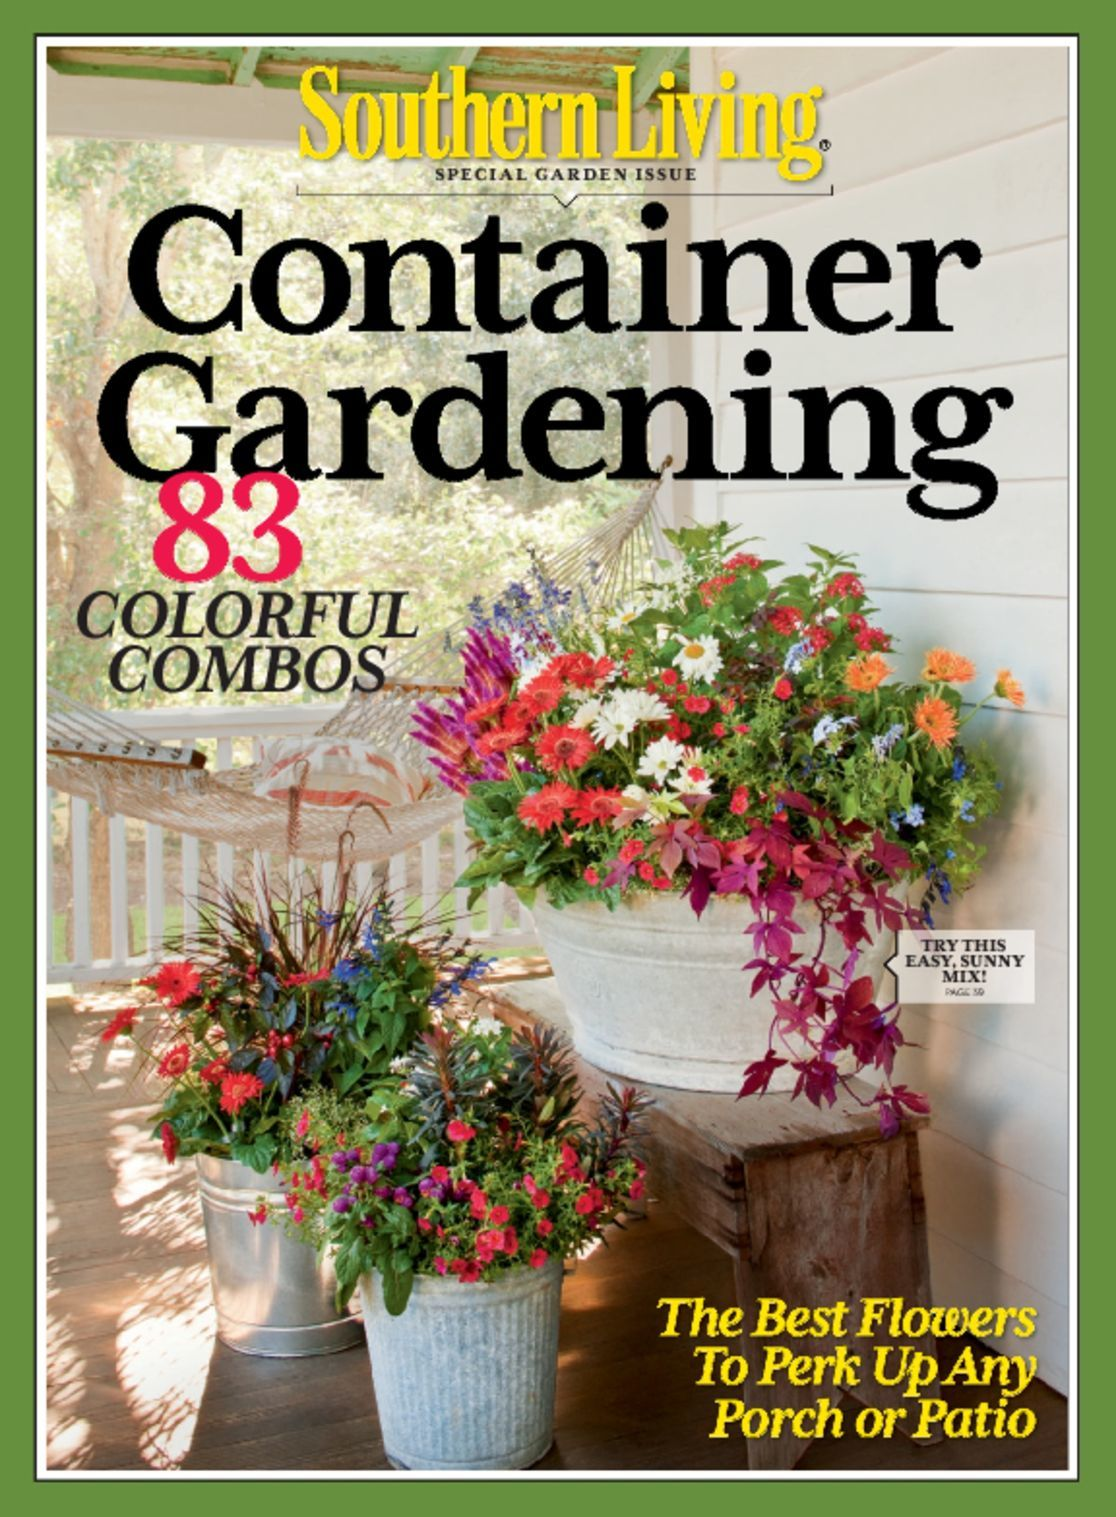 High Quality Southern Living Container Gardening Magazine (Digital)   DiscountMags.com